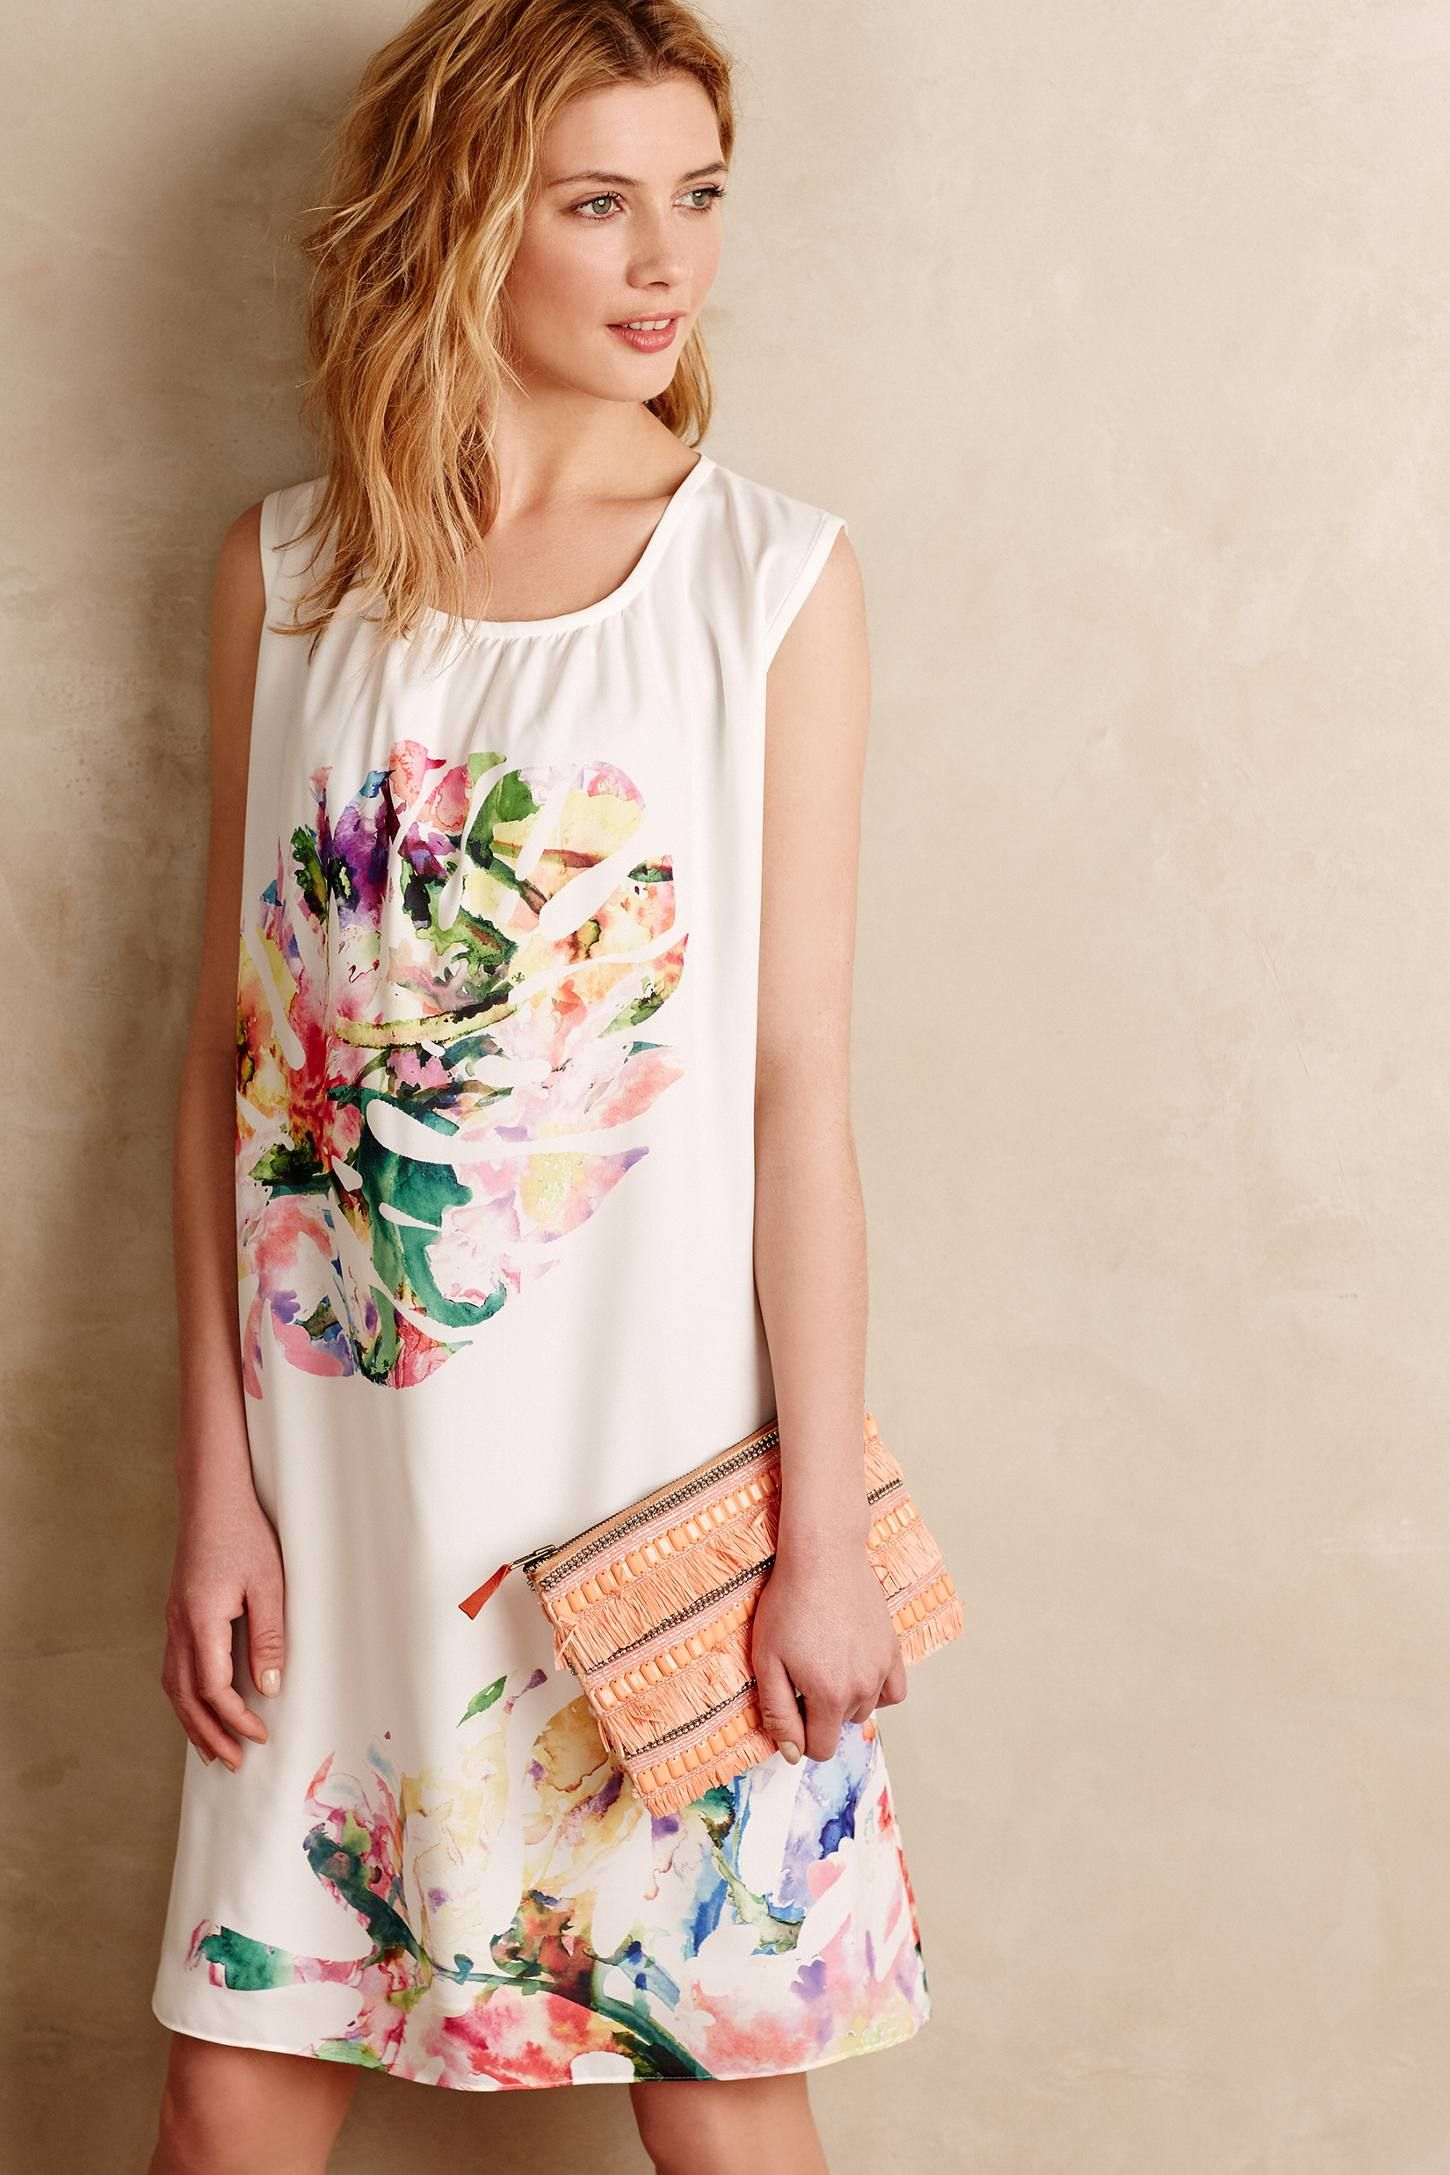 Feathered Palm Swing Dress - anthropologie.com